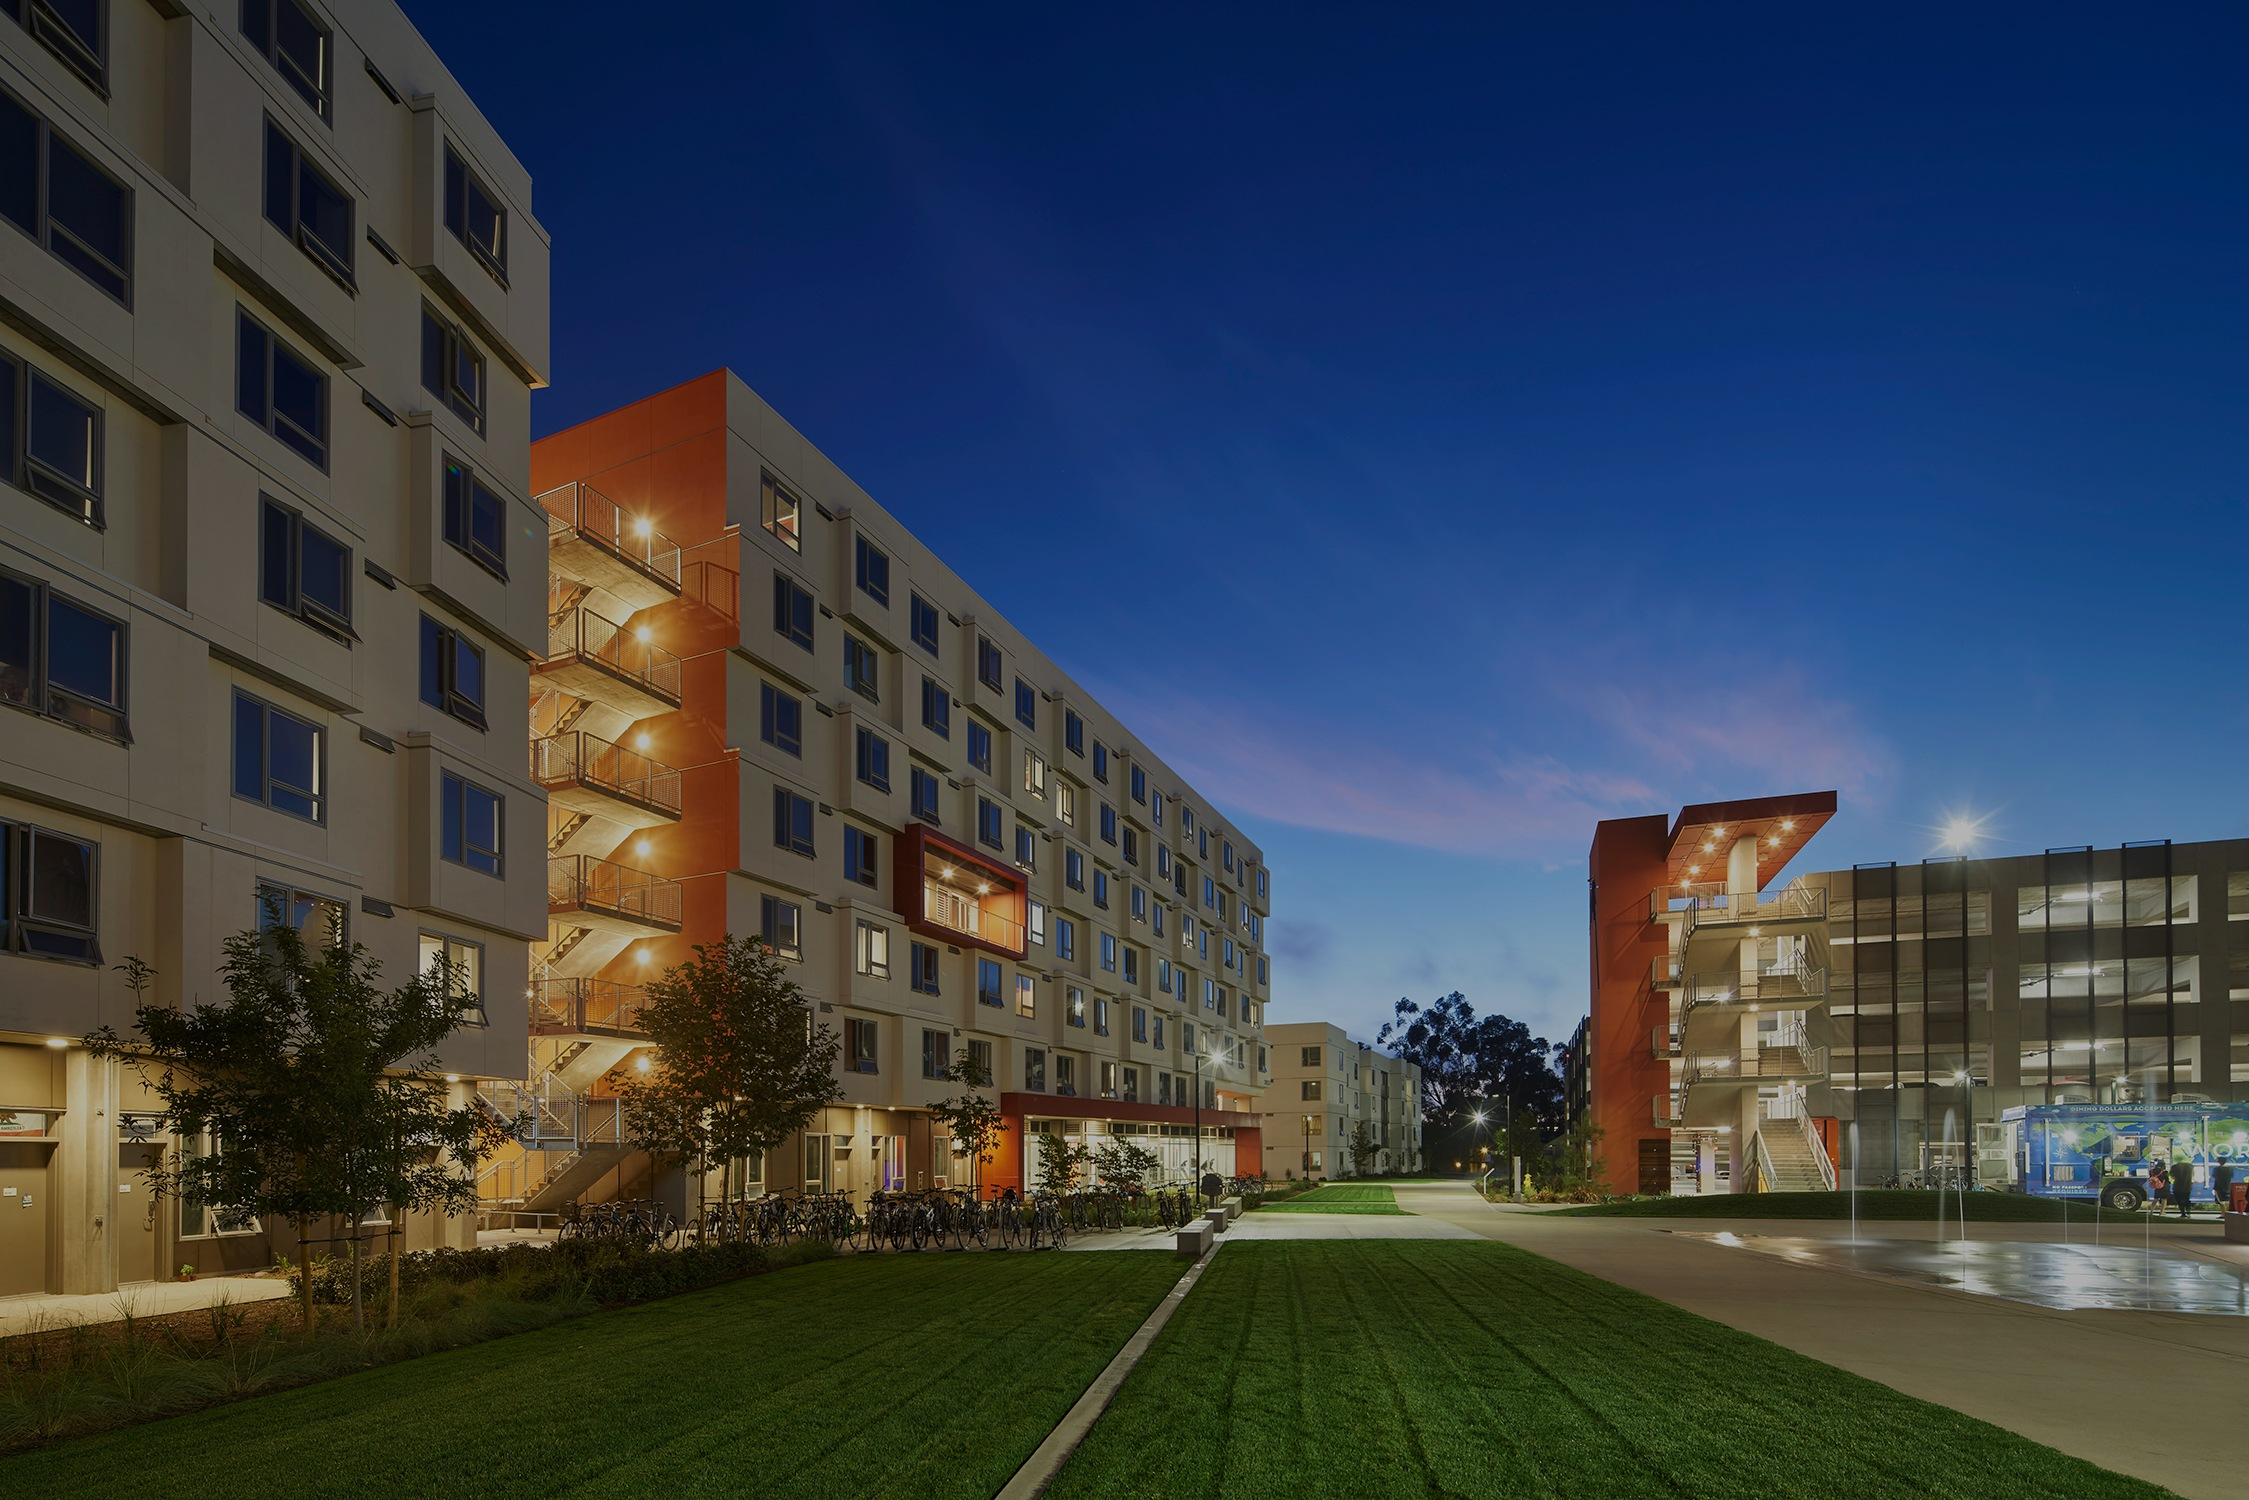 UC San Diego Mesa Nueva Graduate and Professional Student Housing